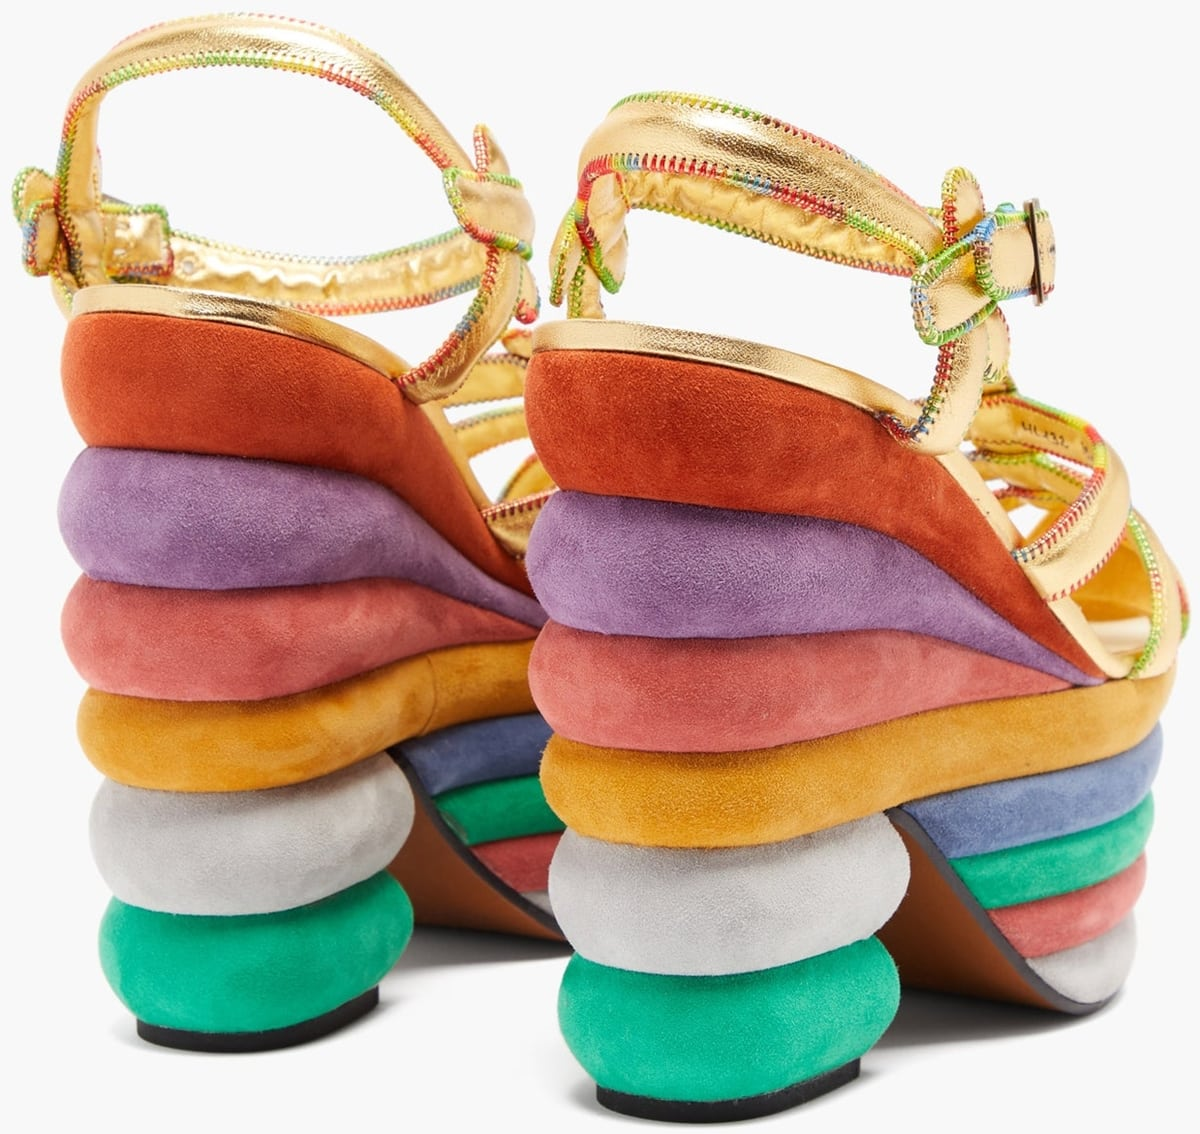 The cushiony multicolored suede layers forming the platform and block heel